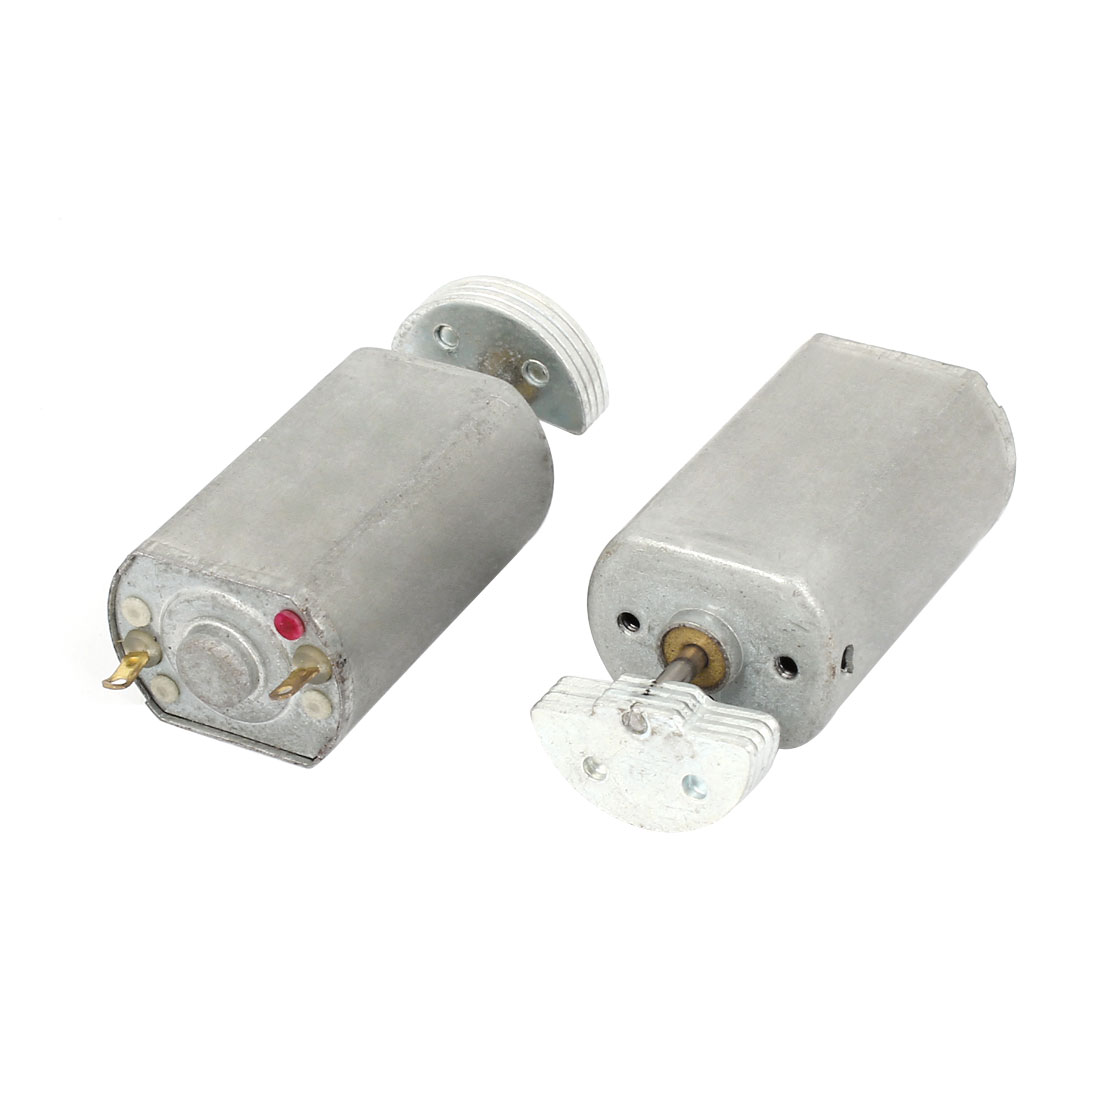 2pcs DC 1.5-6V 22400RPM Soldering Mini Vibration Vibrating Motor